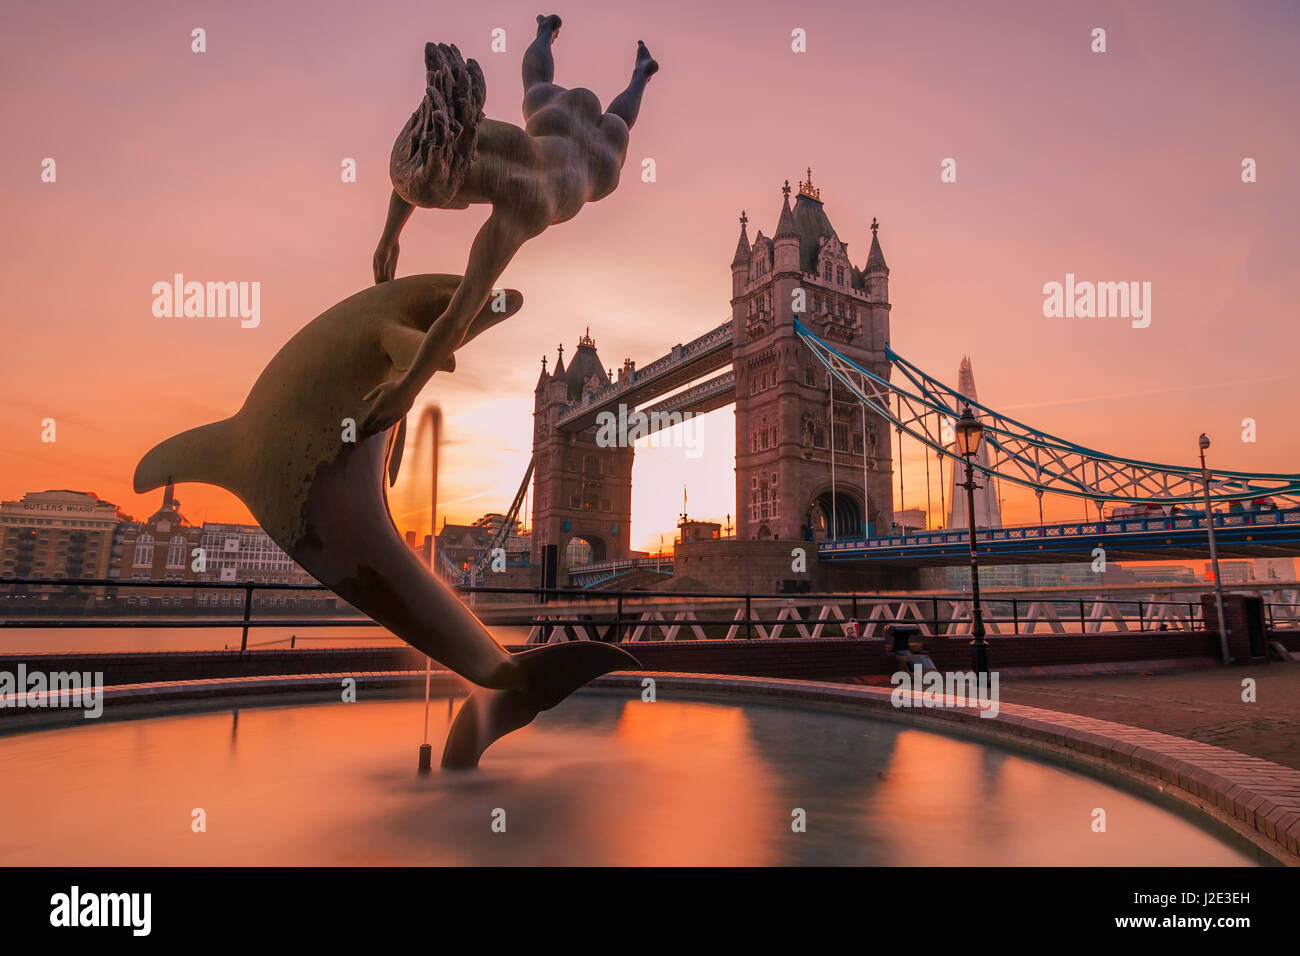 Photo of Girl with a Dolphin (1973), a sculpture by London's Tower Bridge by David Wynne. - Stock Image